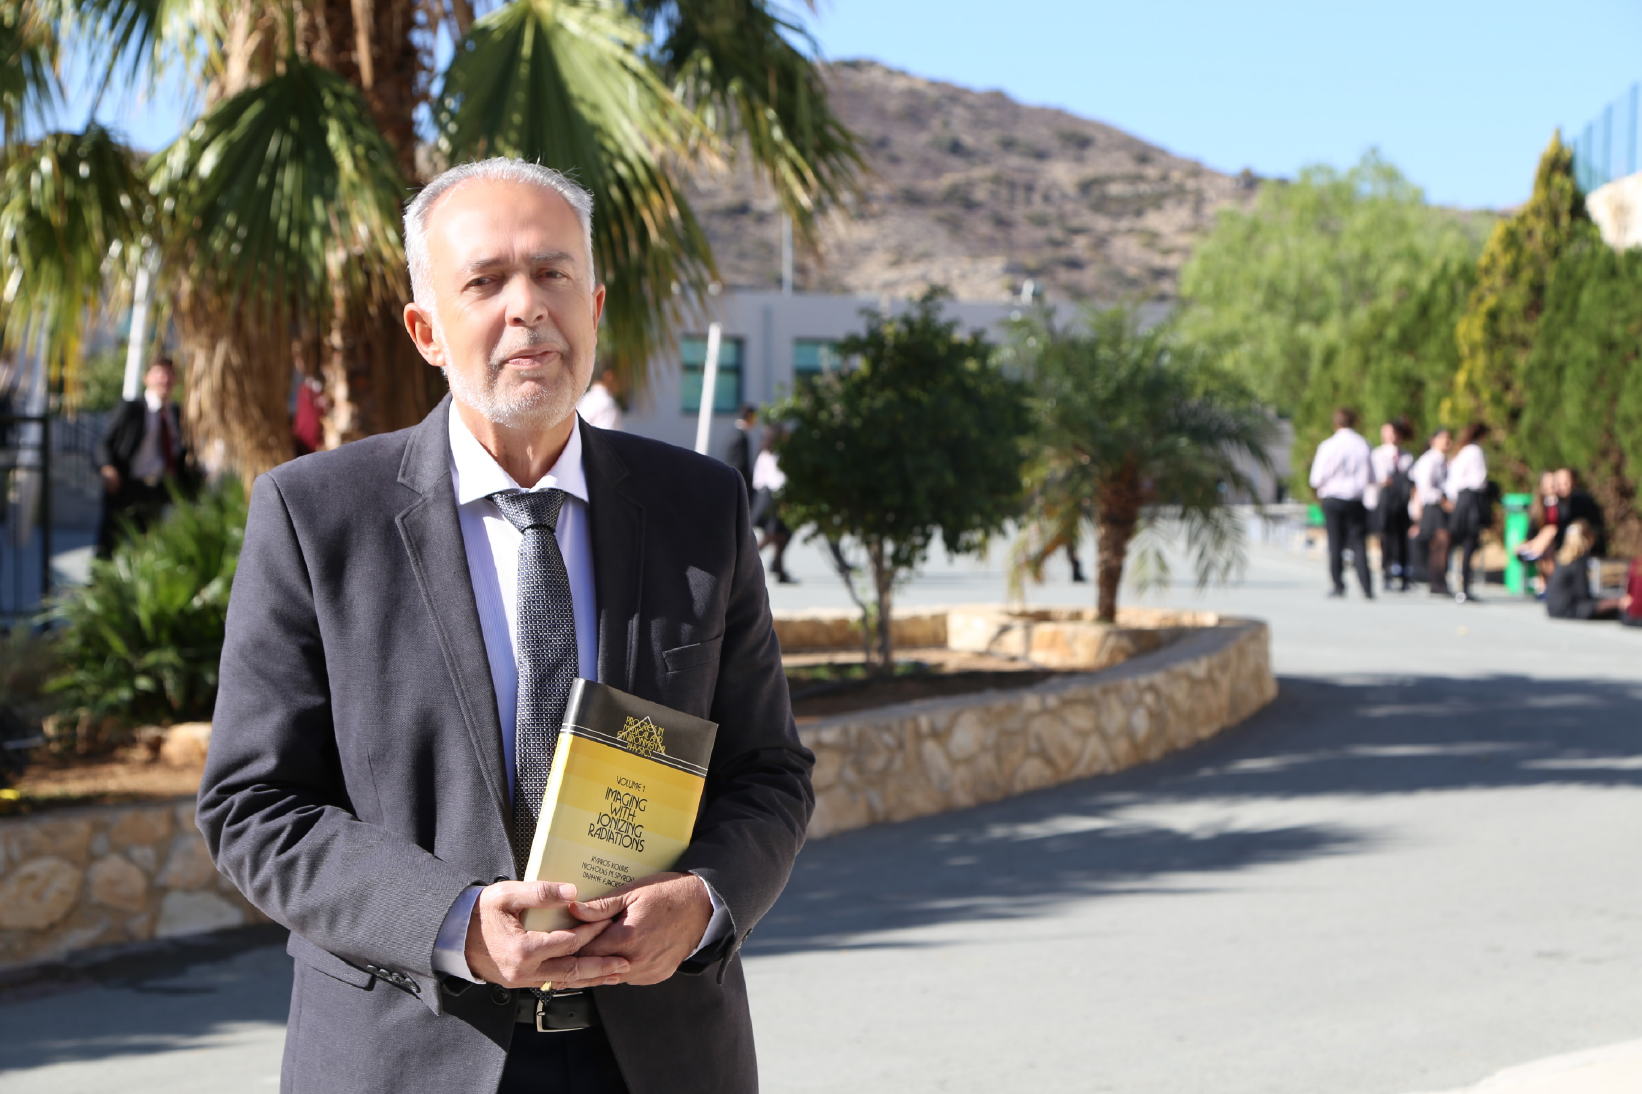 Dr Kouris at The Heritage Private School holding a copy of the book he co-authored on physics